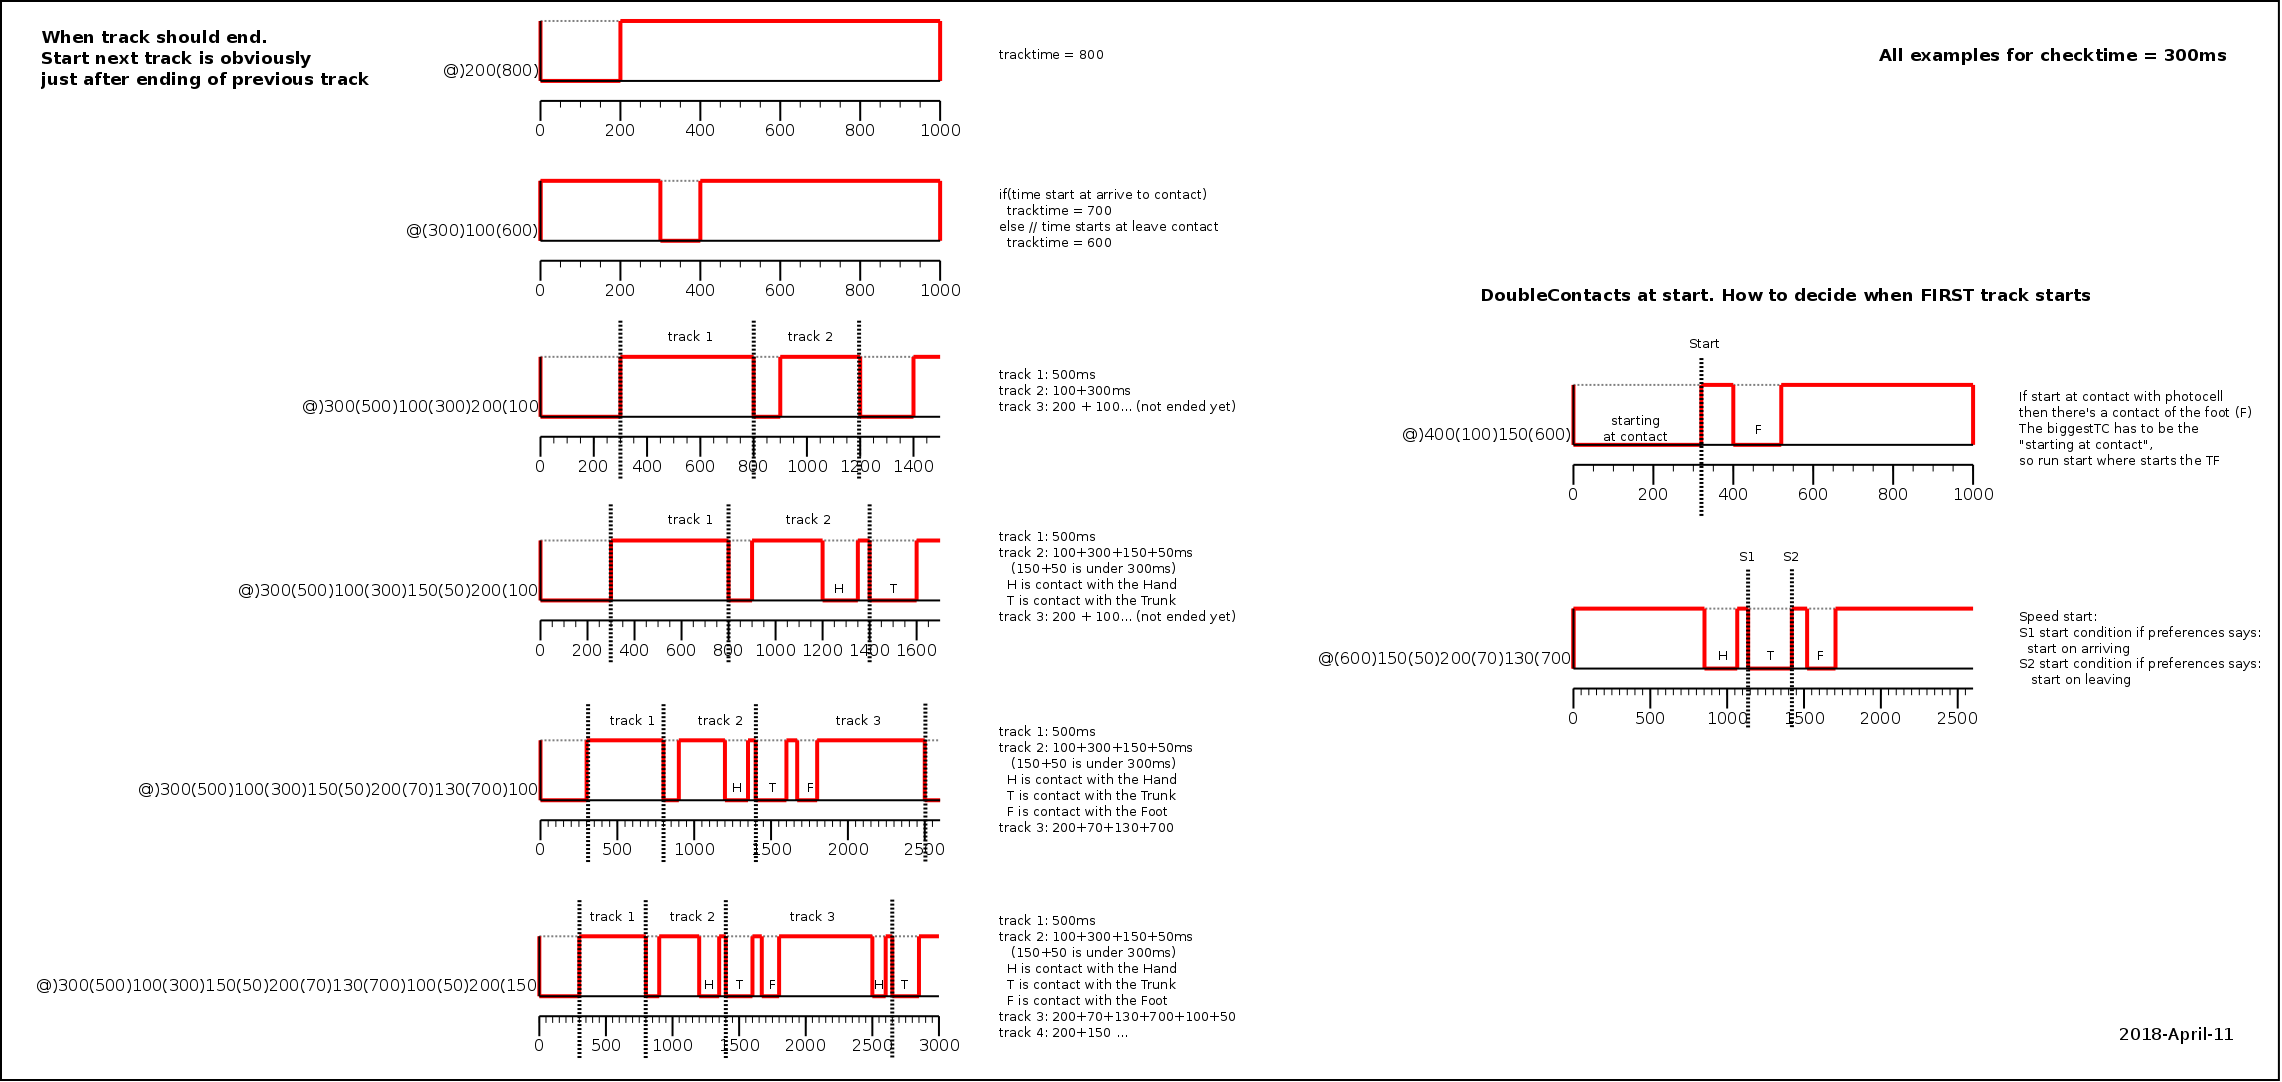 diagrams/processes/photocells-double-contact-workflow-examples.png